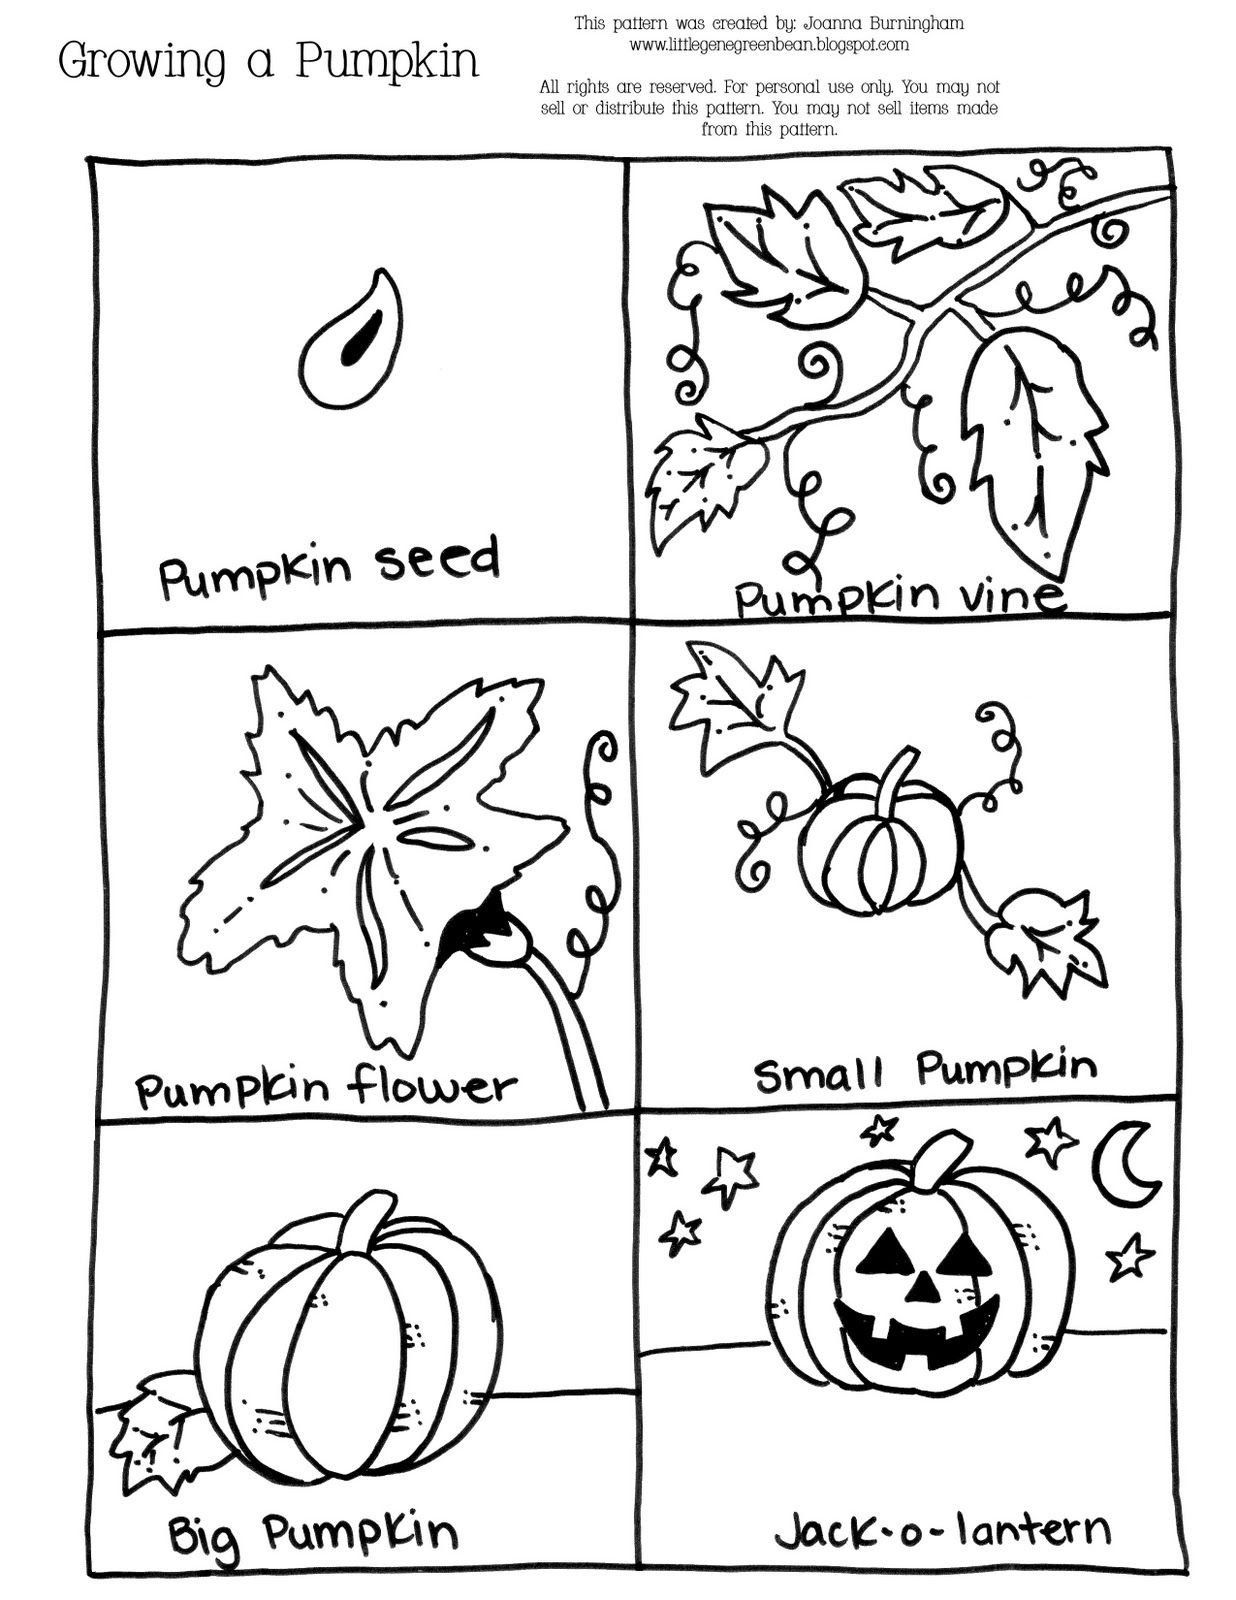 Halloween Sequencing Worksheets Growing A Pumpkin 1 236 1 600 Pixels Sequencing Worksheets Kindergarten Worksheets Preschool Worksheets [ 1600 x 1236 Pixel ]